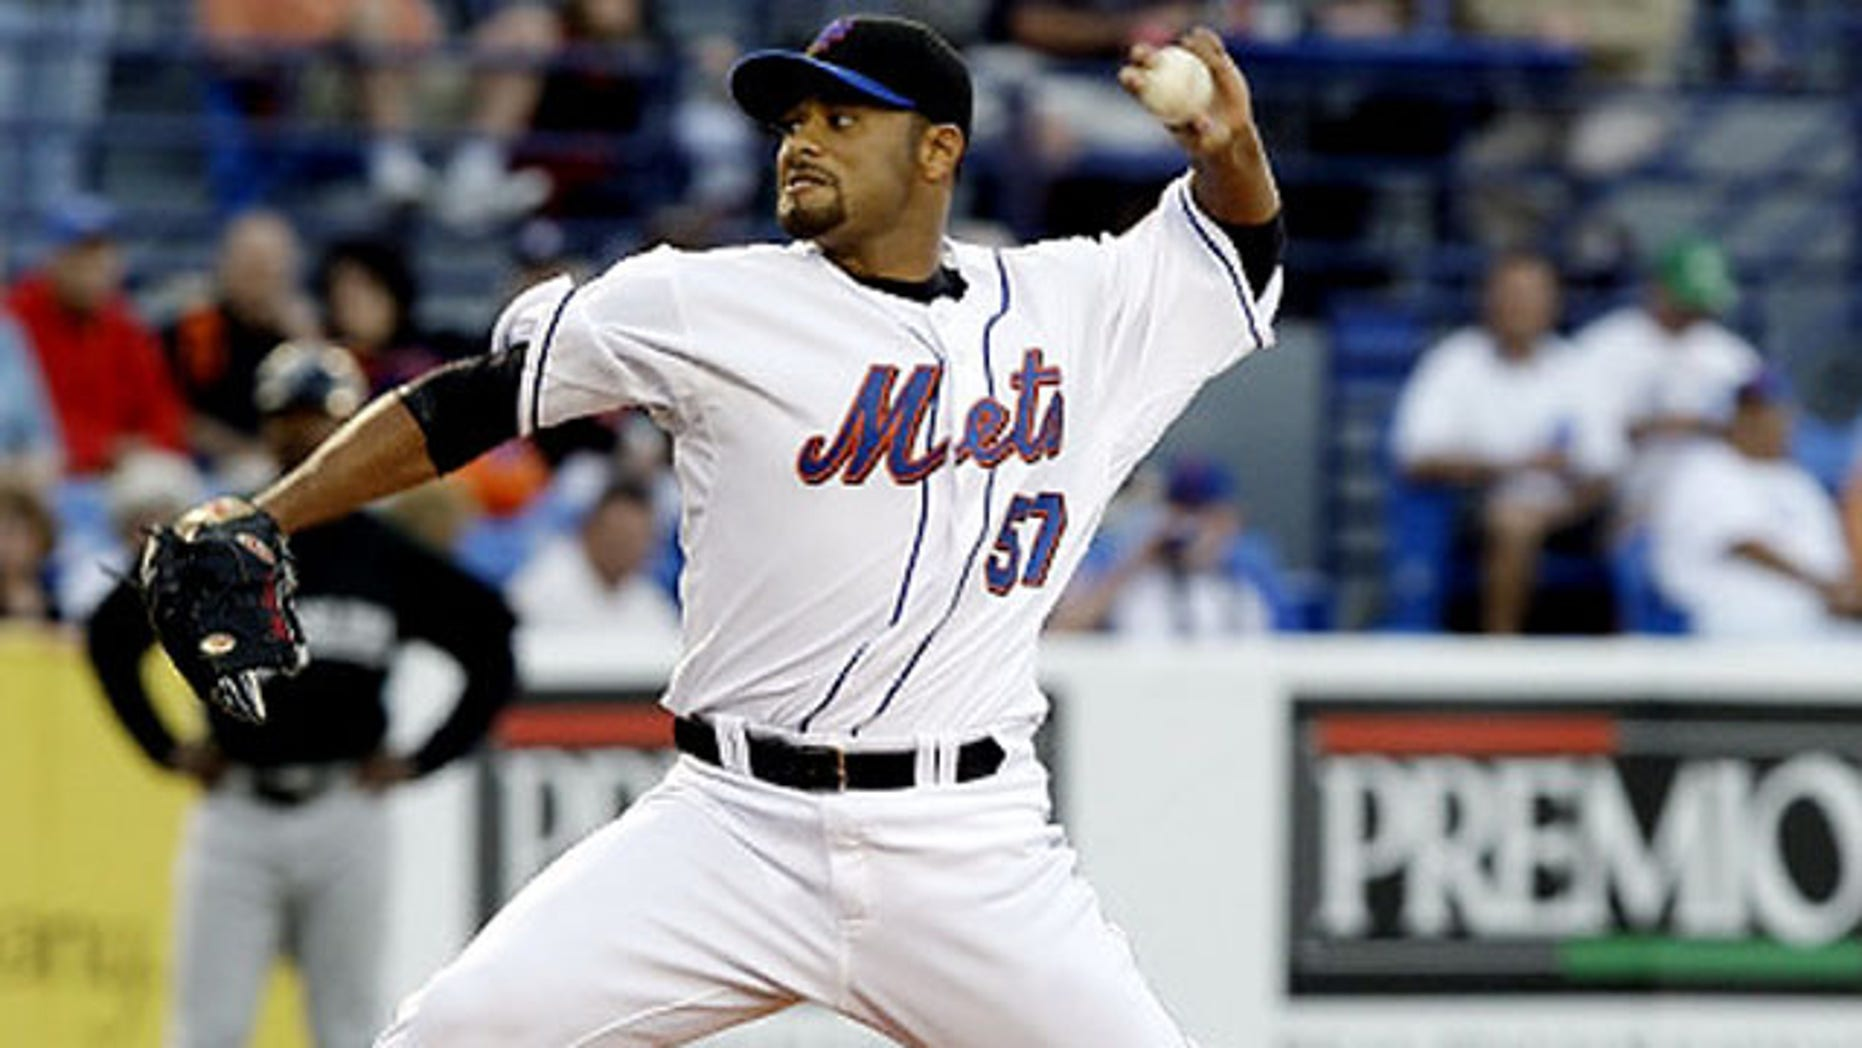 March 12, 2009: New York Mets starting pitcher Johan Santana, from Venezuela, throws during a spring training baseball game against the Florida Marlins in Port St. Lucie, Fla.